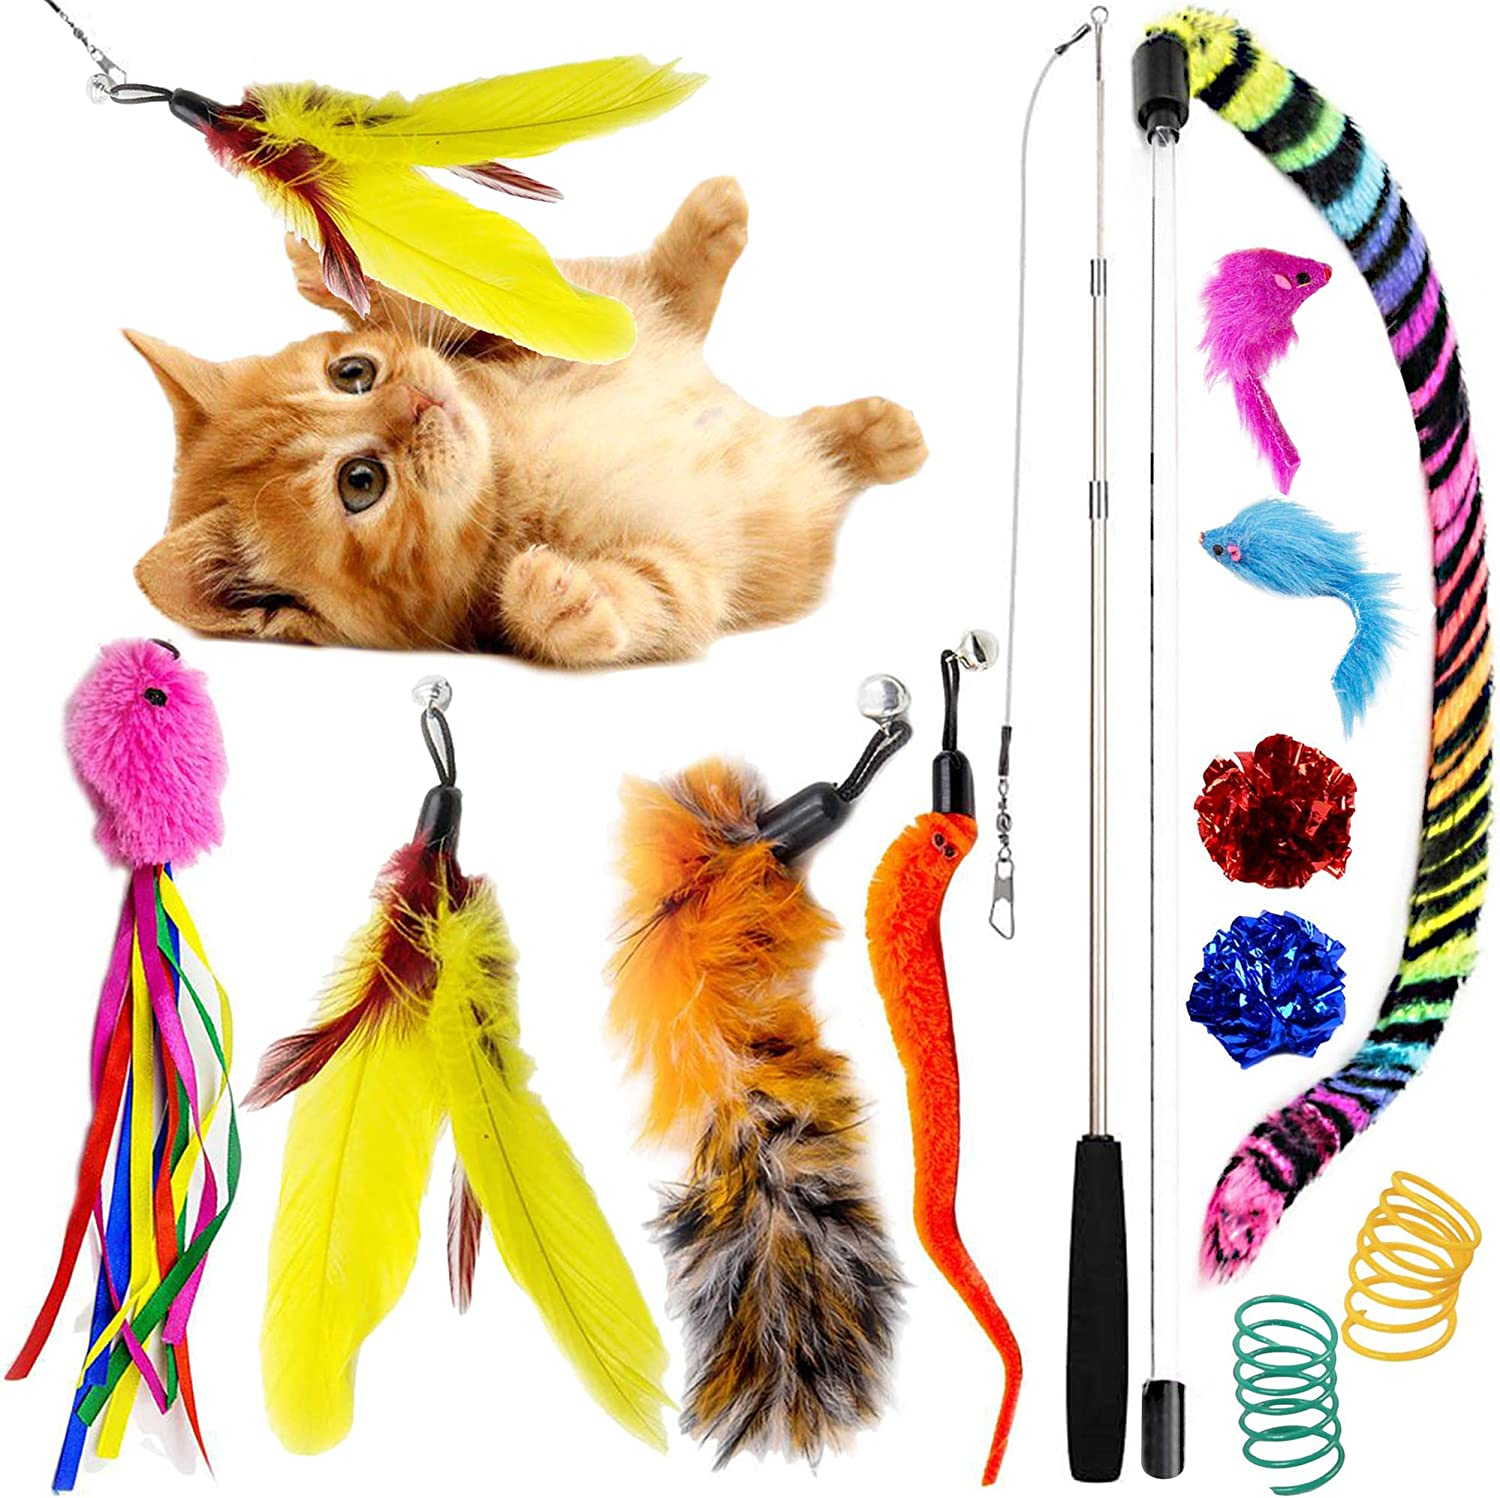 SillyPet Youngever 12 Pieces Cat Teasing Challenge the lowest price of Japan Feather shipfree Toys Toy Retra